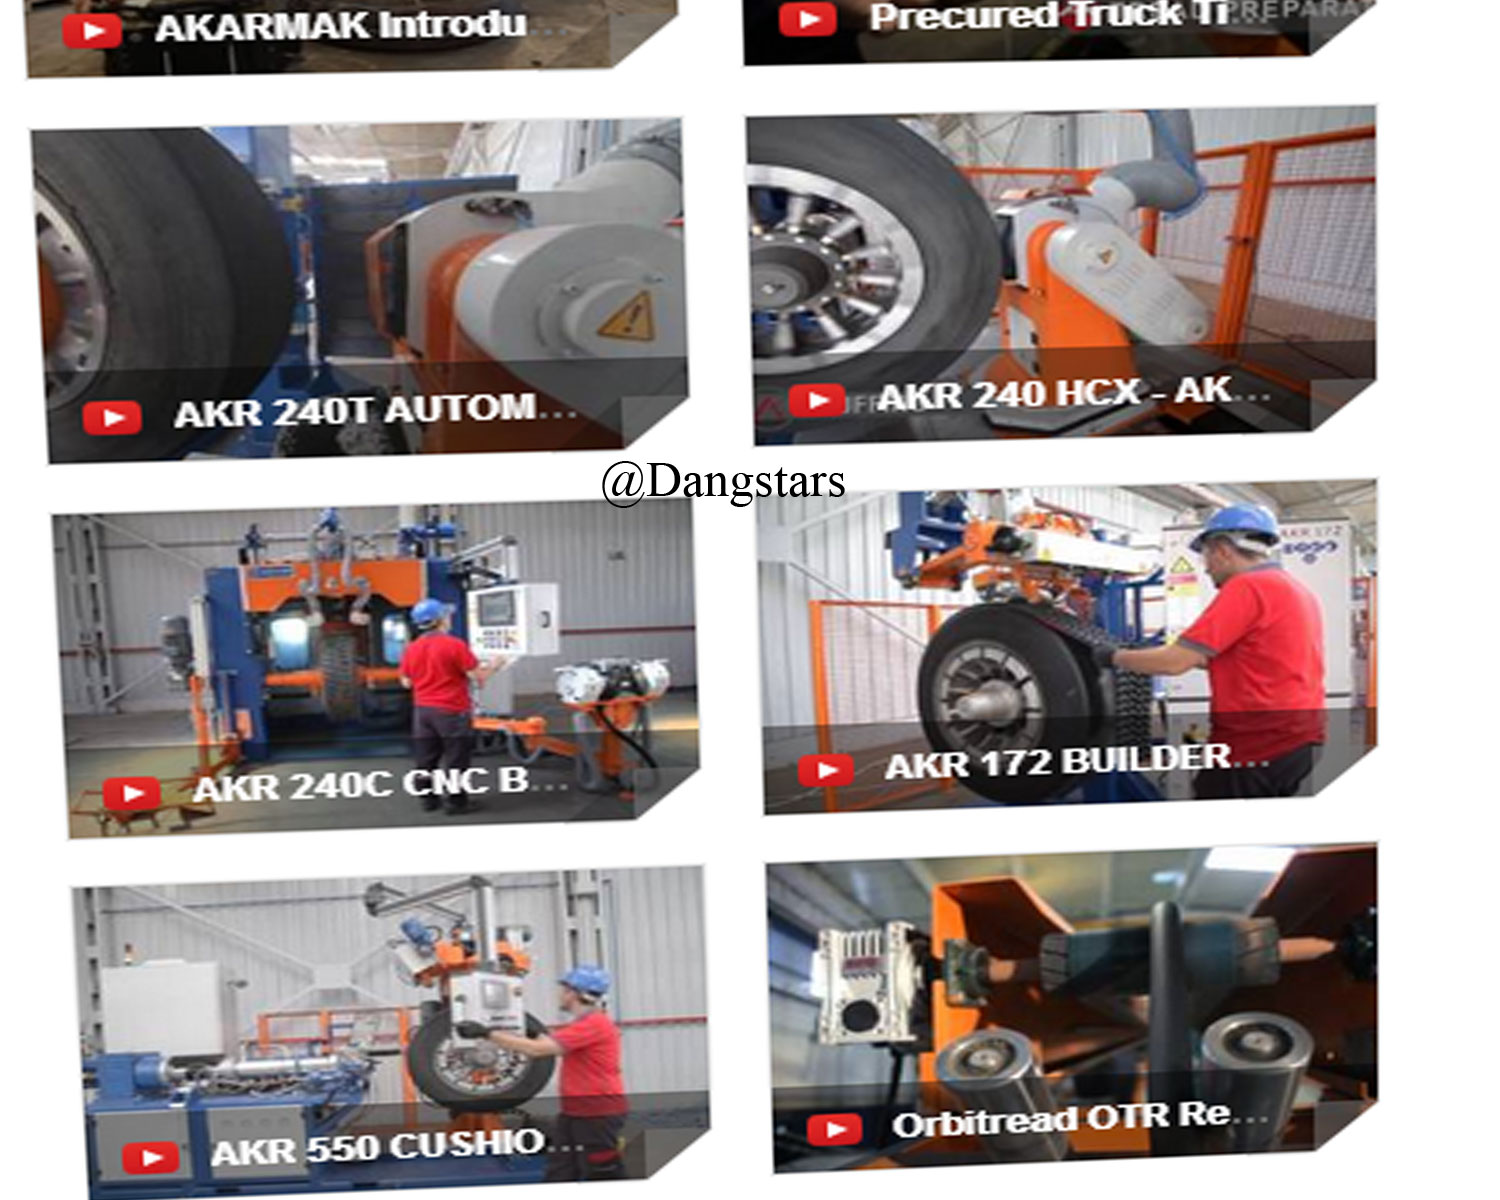 Business Introduction for Tyres Retreading Equipment by Akarmak - Turkey